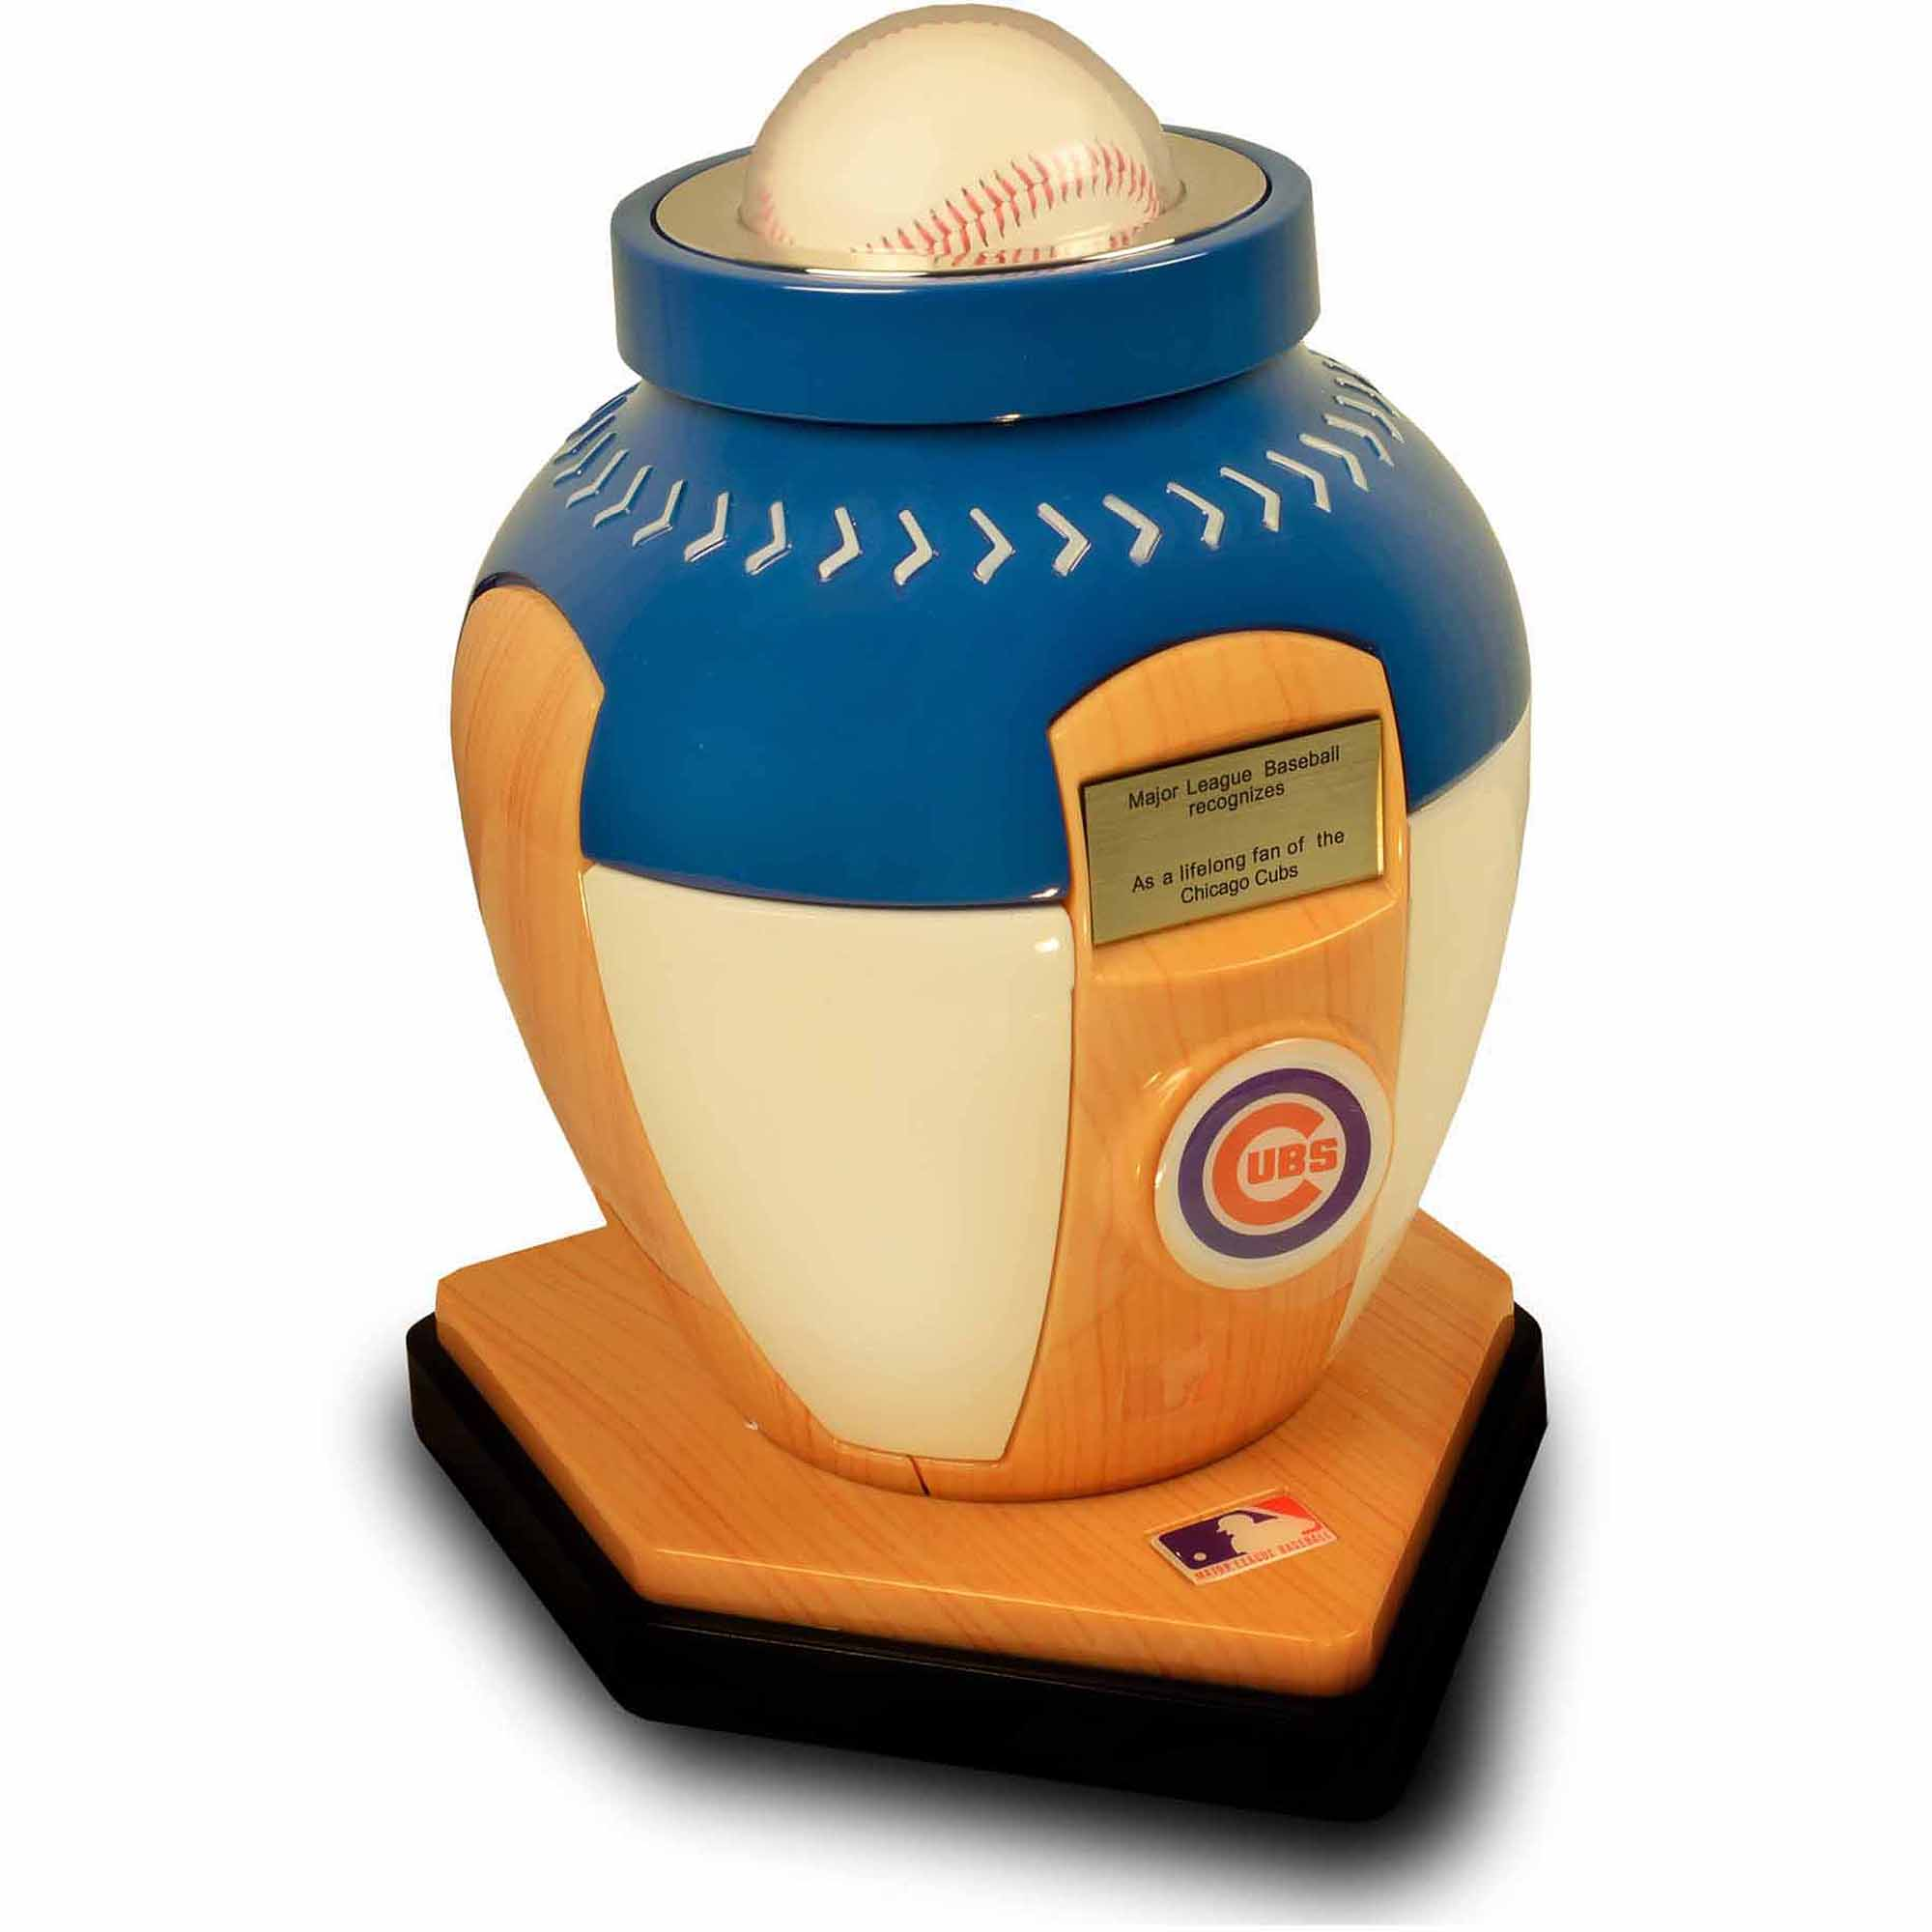 ficial Major League Baseball Cremation Urn for Human Ashes